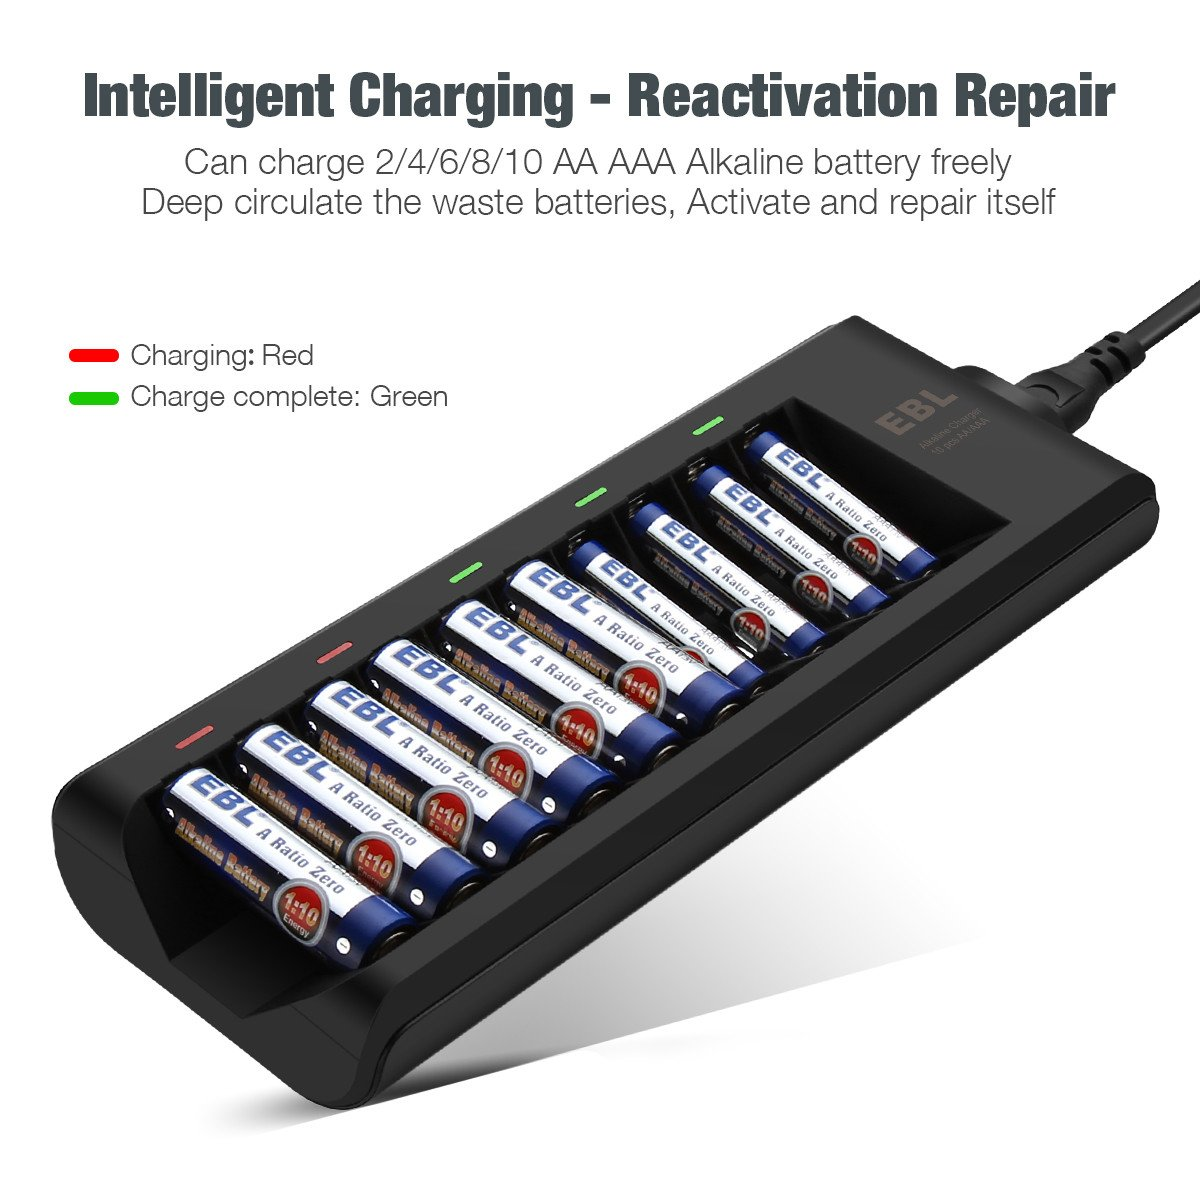 Ebl 10 Bay Alkaline Battery Charger For Disposable Aa How To Make A Nimh Nicd Circuit Homemade Aaa Not Included Home Audio Theater